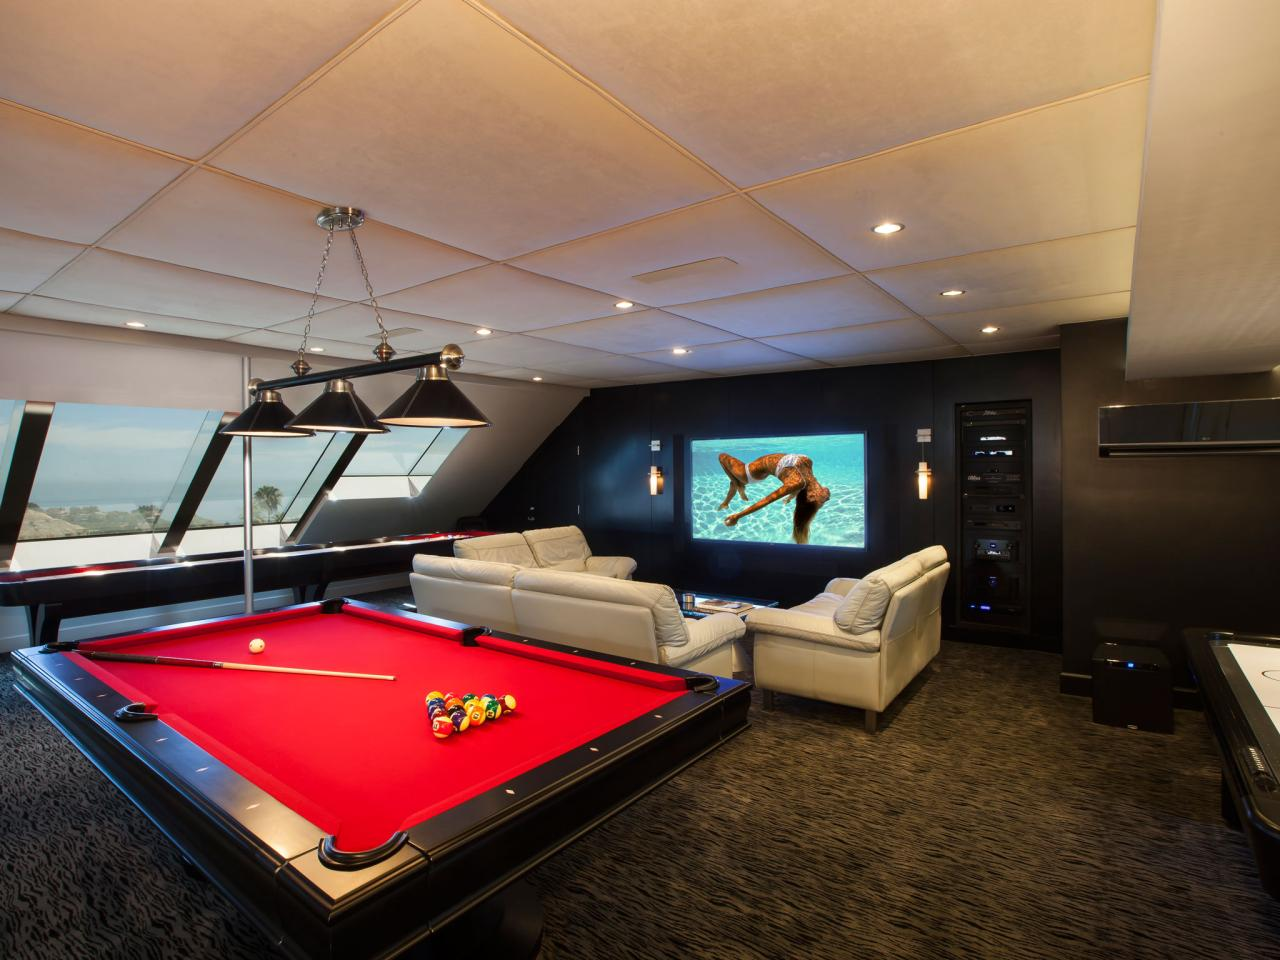 50 Best Man Cave Ideas and Designs for 2020 on Man Cave Patio Ideas  id=89399